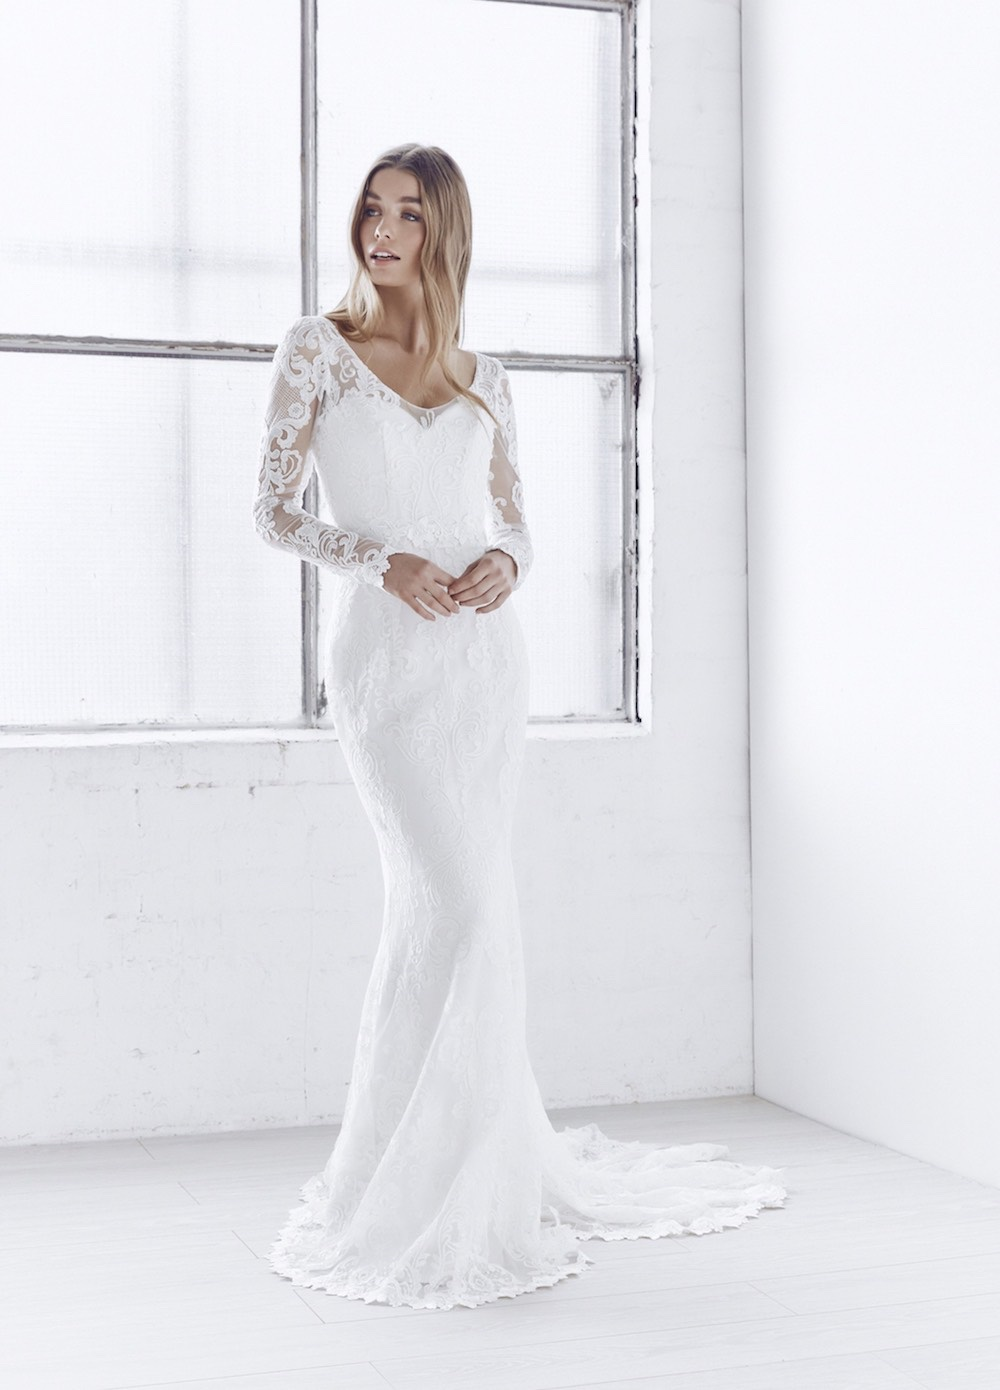 With a beautiful, botanical inspired embroidered lace and sheer long sleeves, the India is opulent and bohemian, calling for bare feet, tousled hair and an adventurous spirit